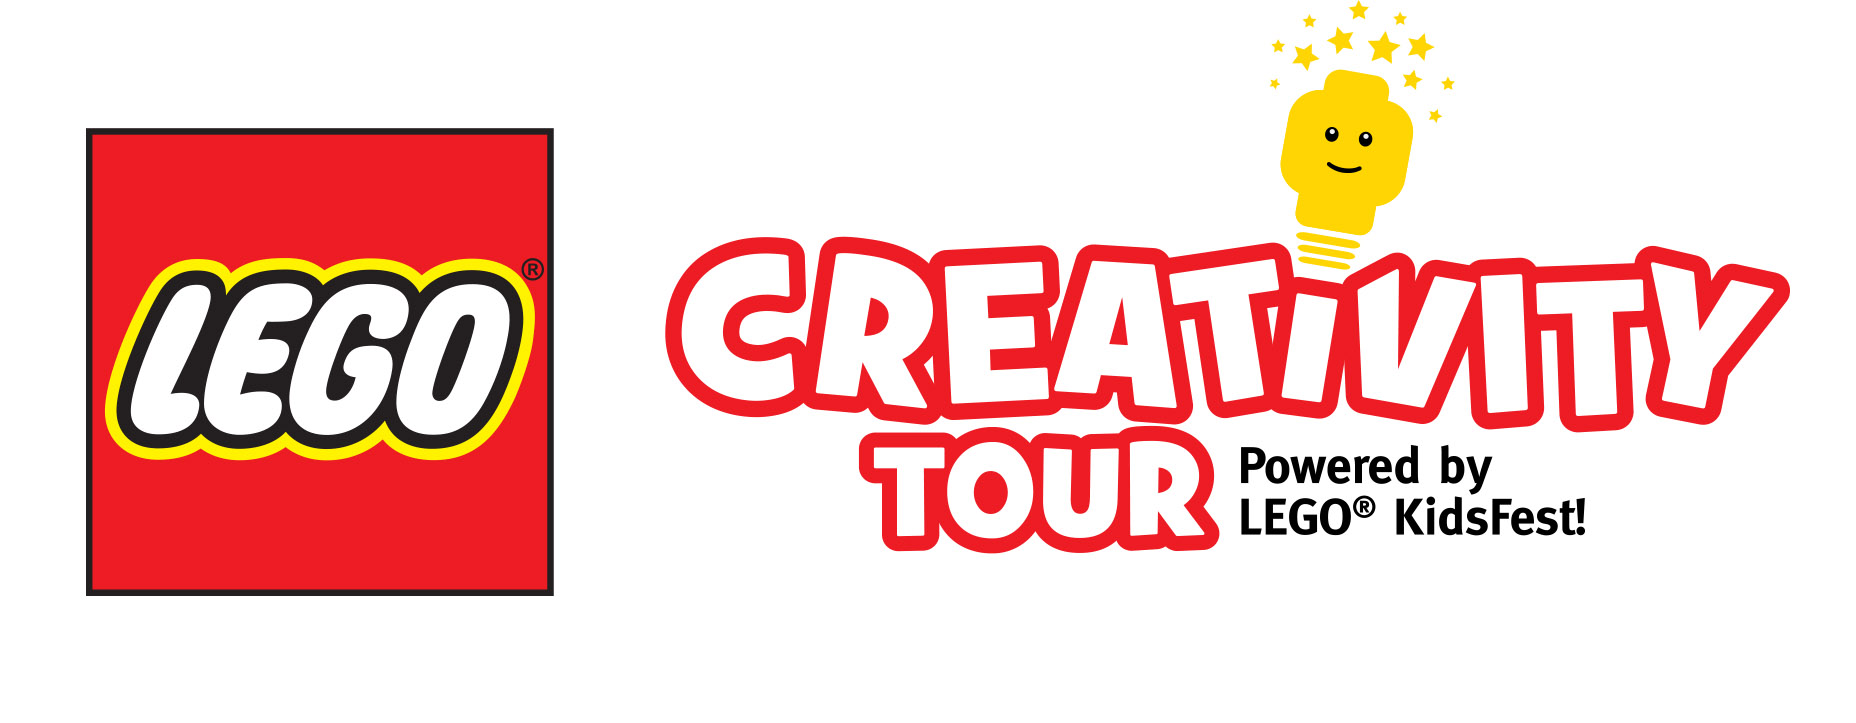 The LEGO Creativity Tour 2015!